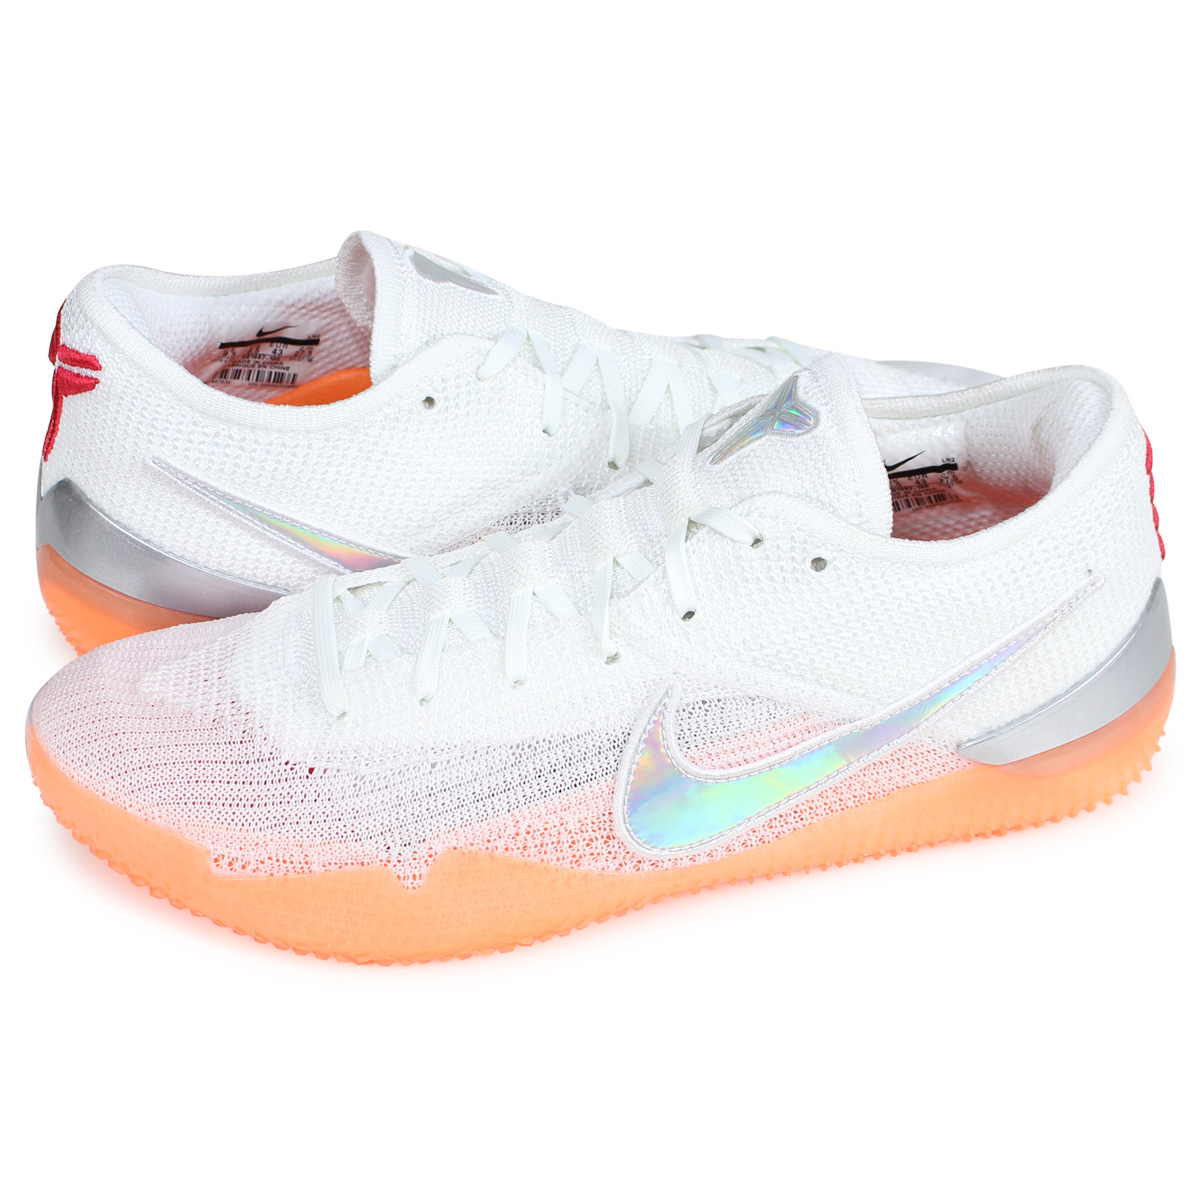 outlet store bbbcb a3059 Nike NIKE Corby sneakers men KOBE AD NXT 360 white AQ1087-100 [load planned  Shinnyu load in reservation product 2/21 containing] [192]